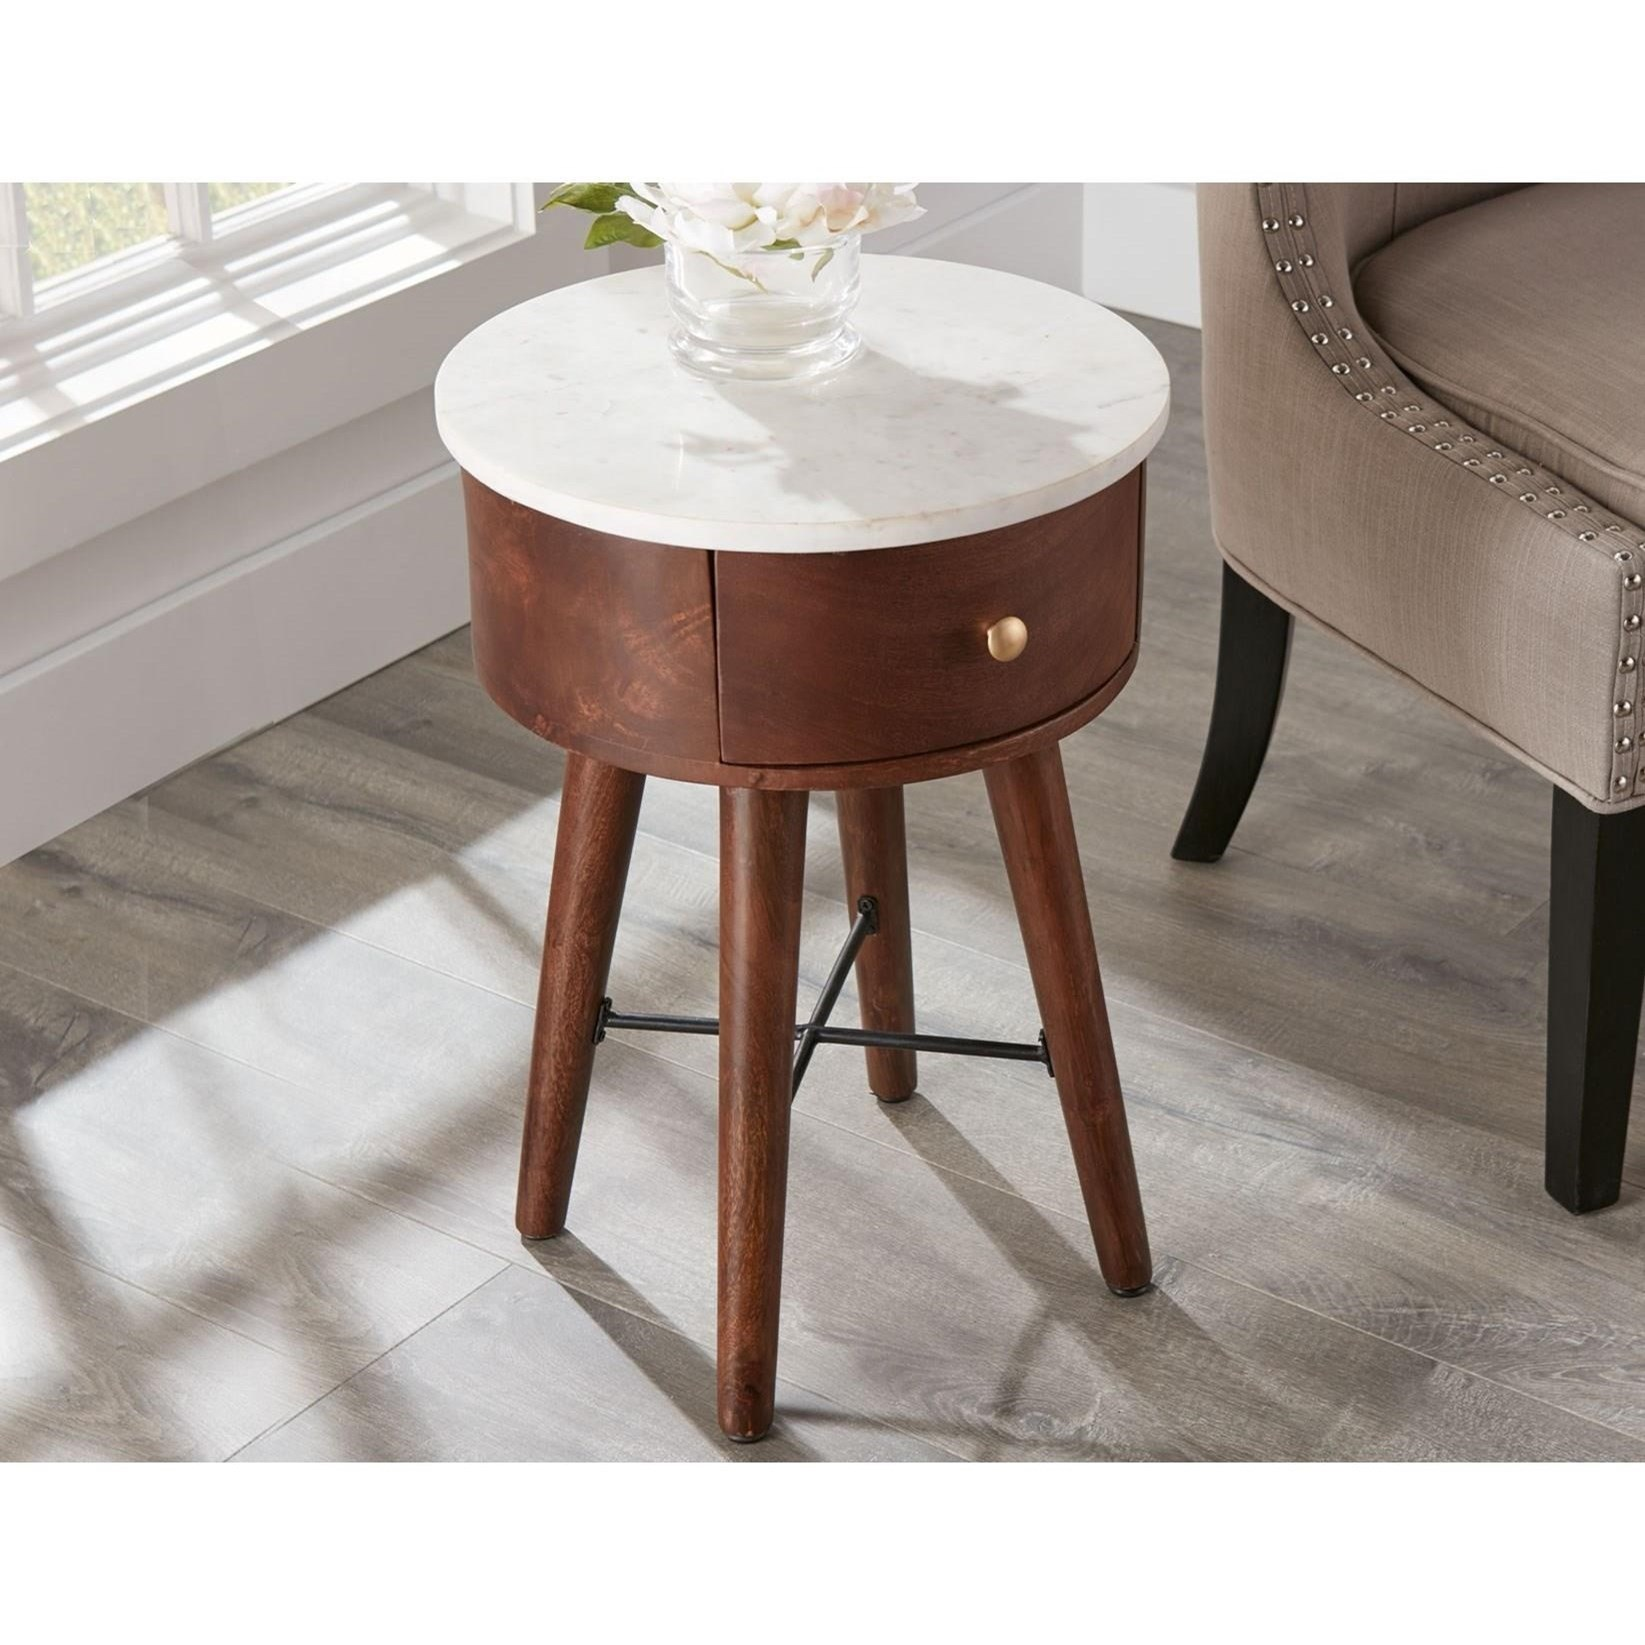 Bangalore Accent Table by Steve Silver at Northeast Factory Direct